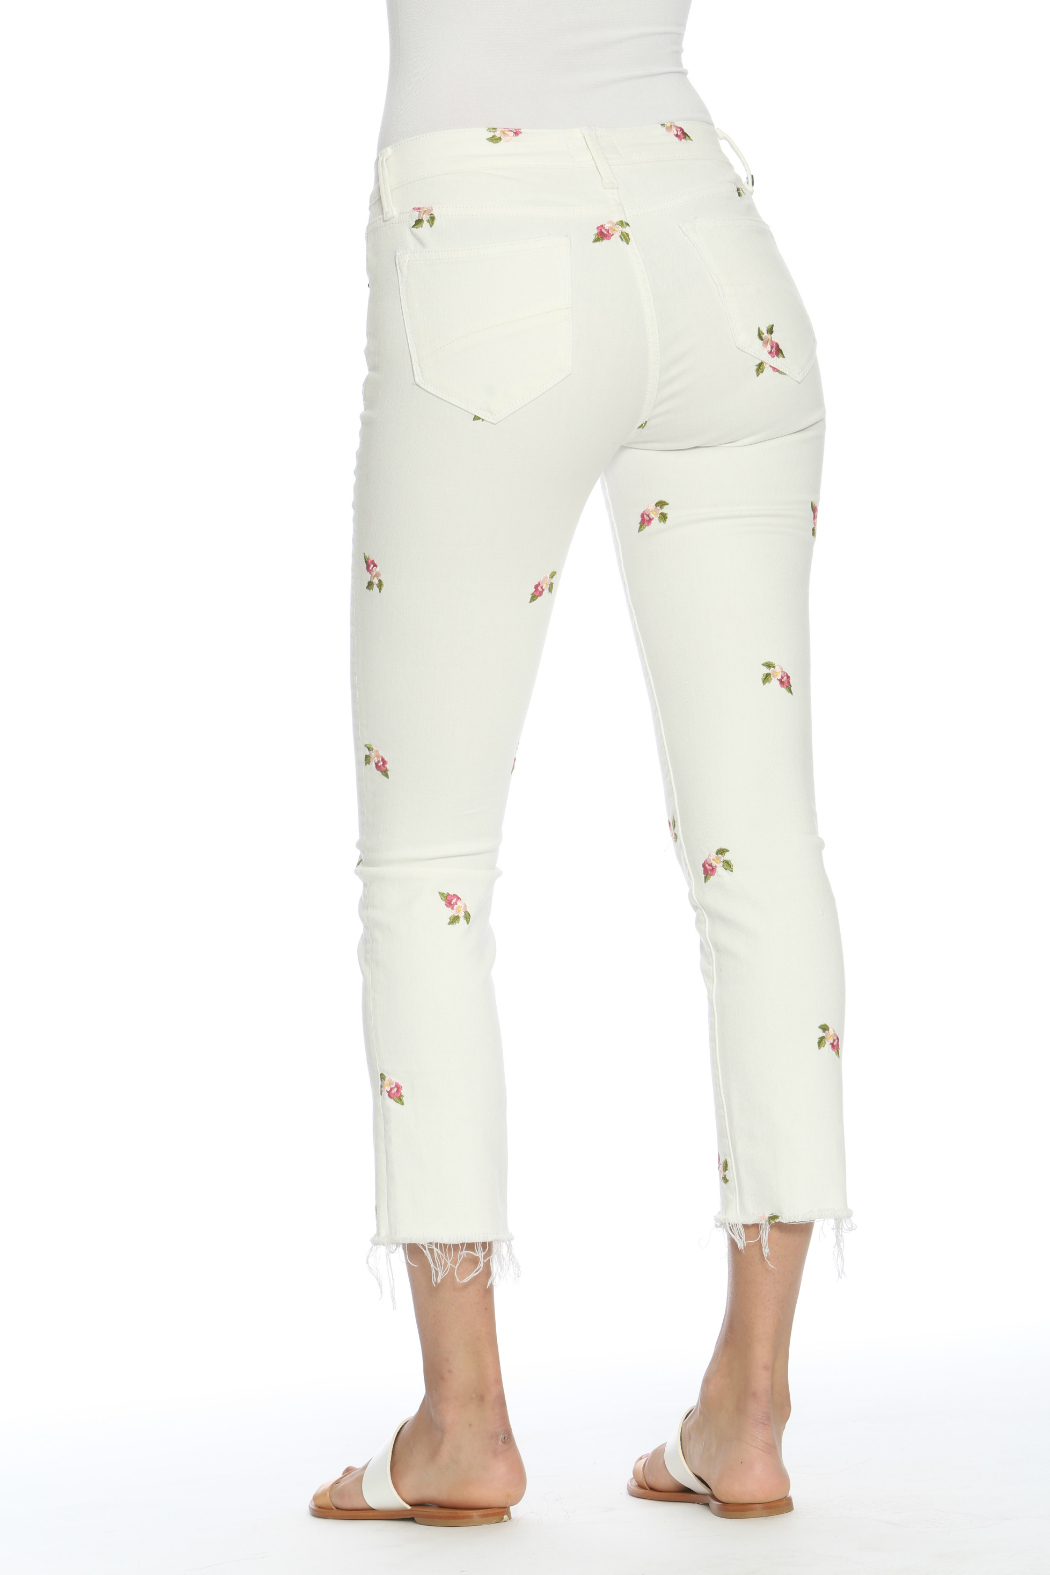 Driftwood Candace Crop White Jeans w Rosebuds - Side Cropped Image